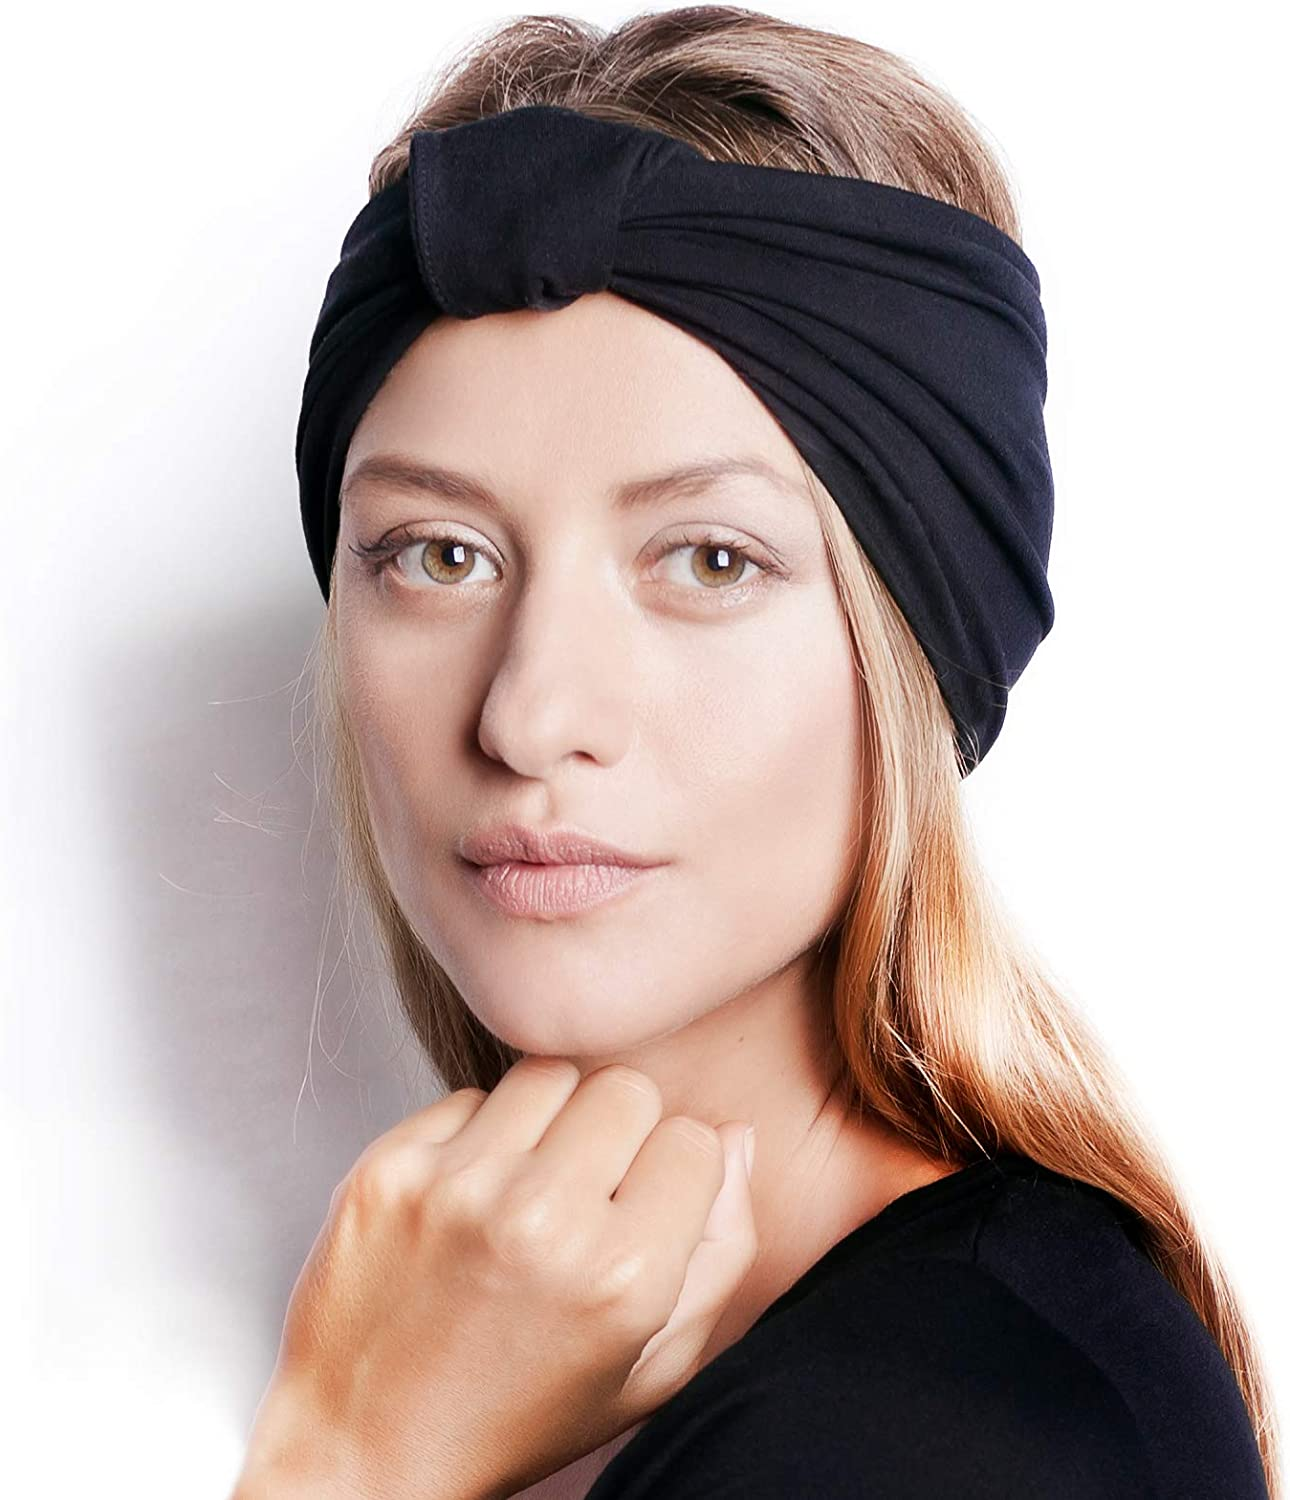 "BLOM Original Headbands For Women. 6"" Multi Style Design for Yoga Workout Running Athletic. Wear Wide Turban Knotted. Ethically Made in Bali."